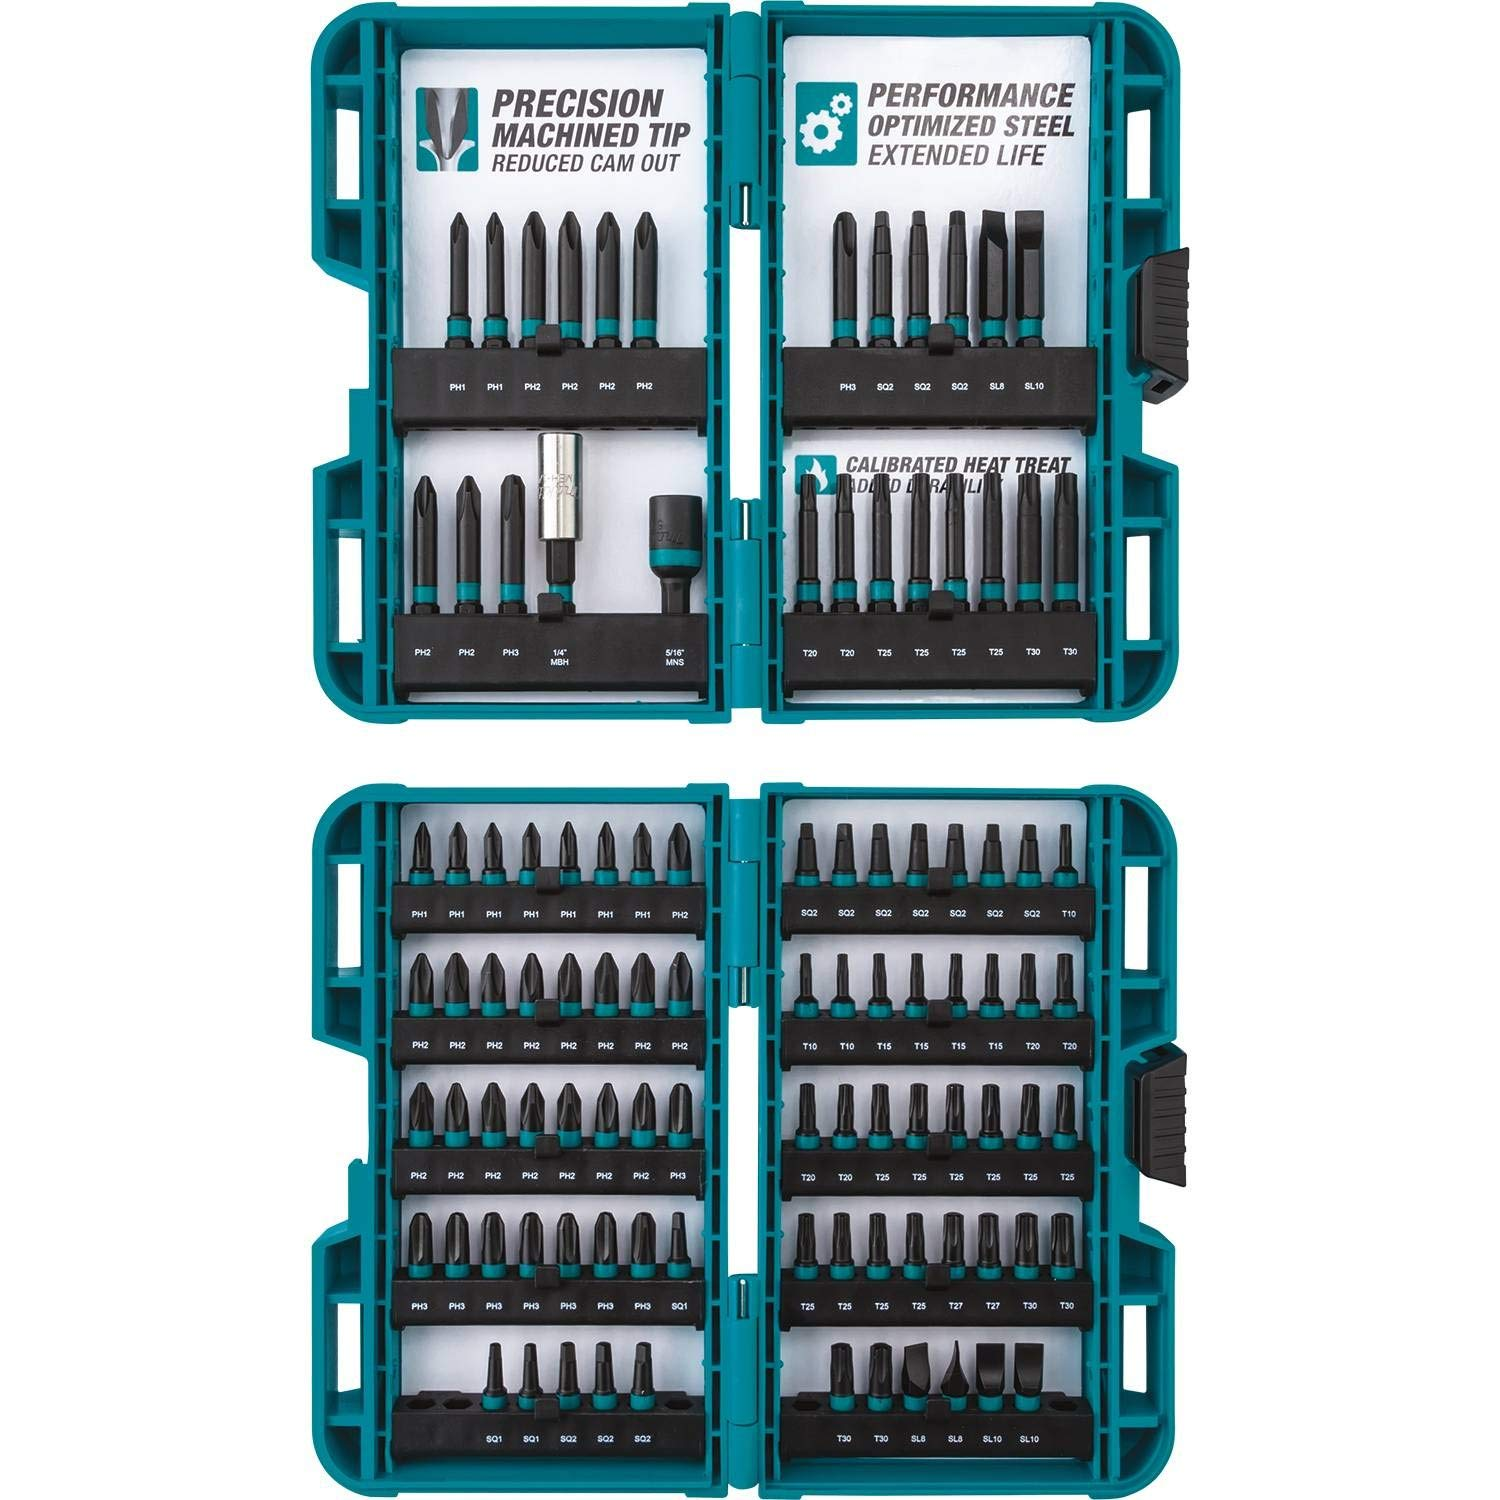 Makita E-00038 Impactx 100 Pc. Driver Bit Set by Makita